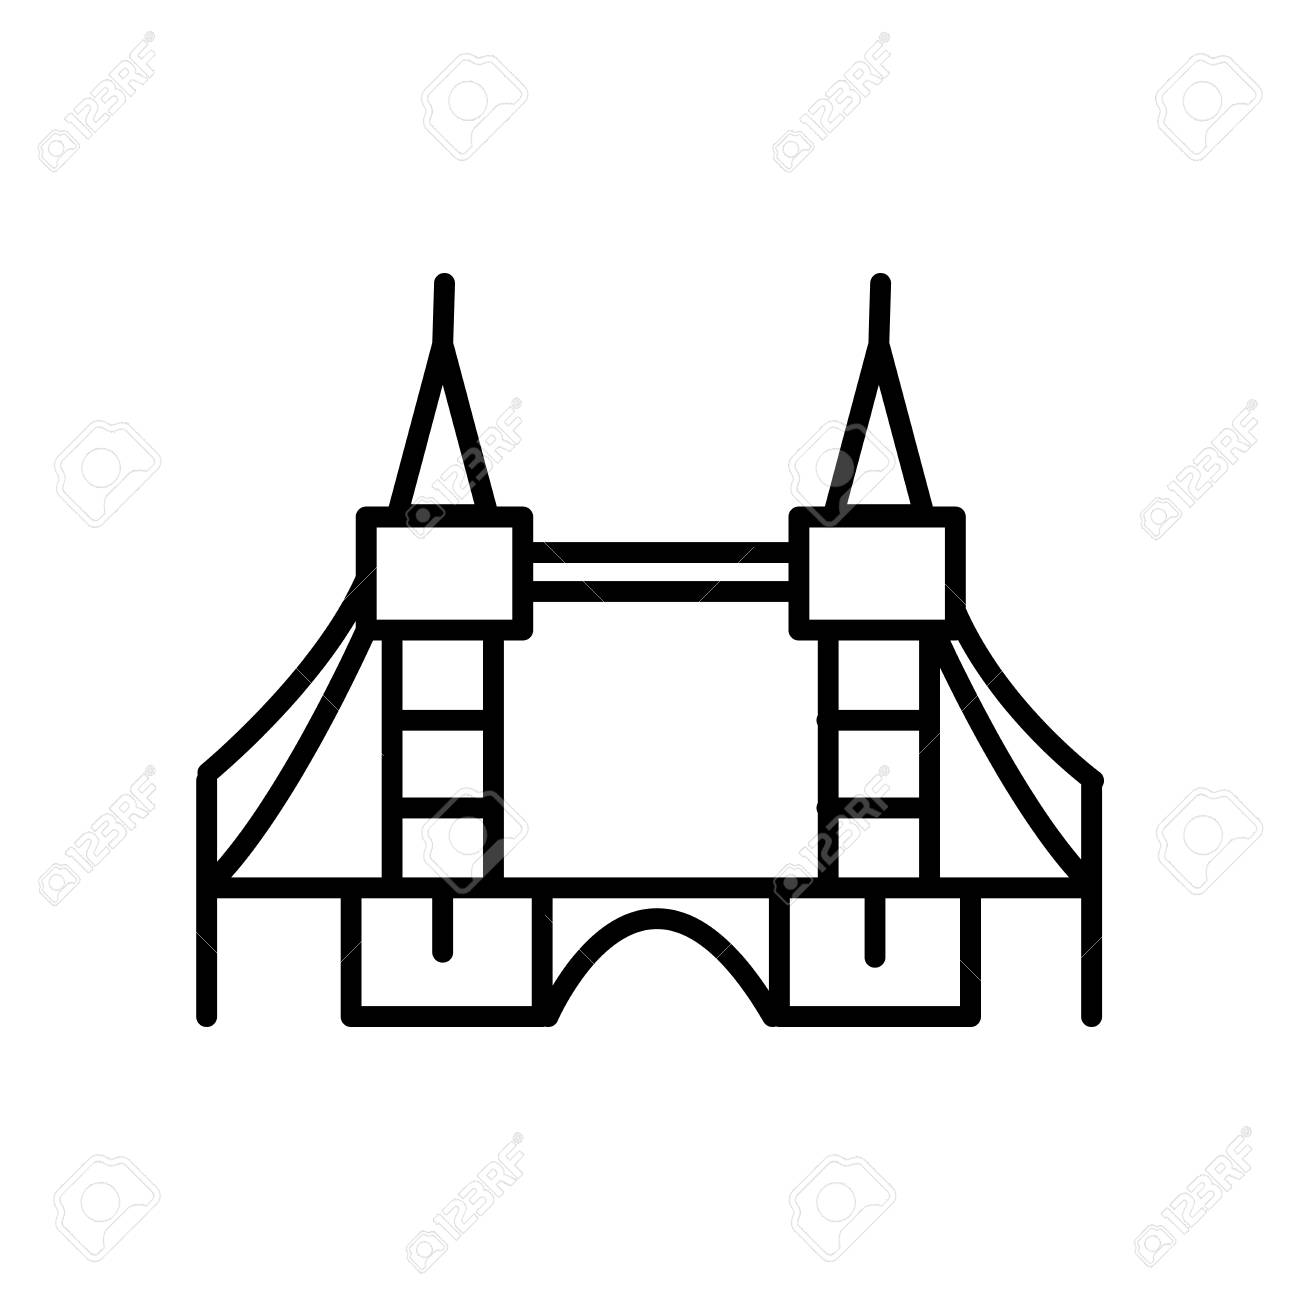 Tower Bridge icon vector isolated on white background, Tower